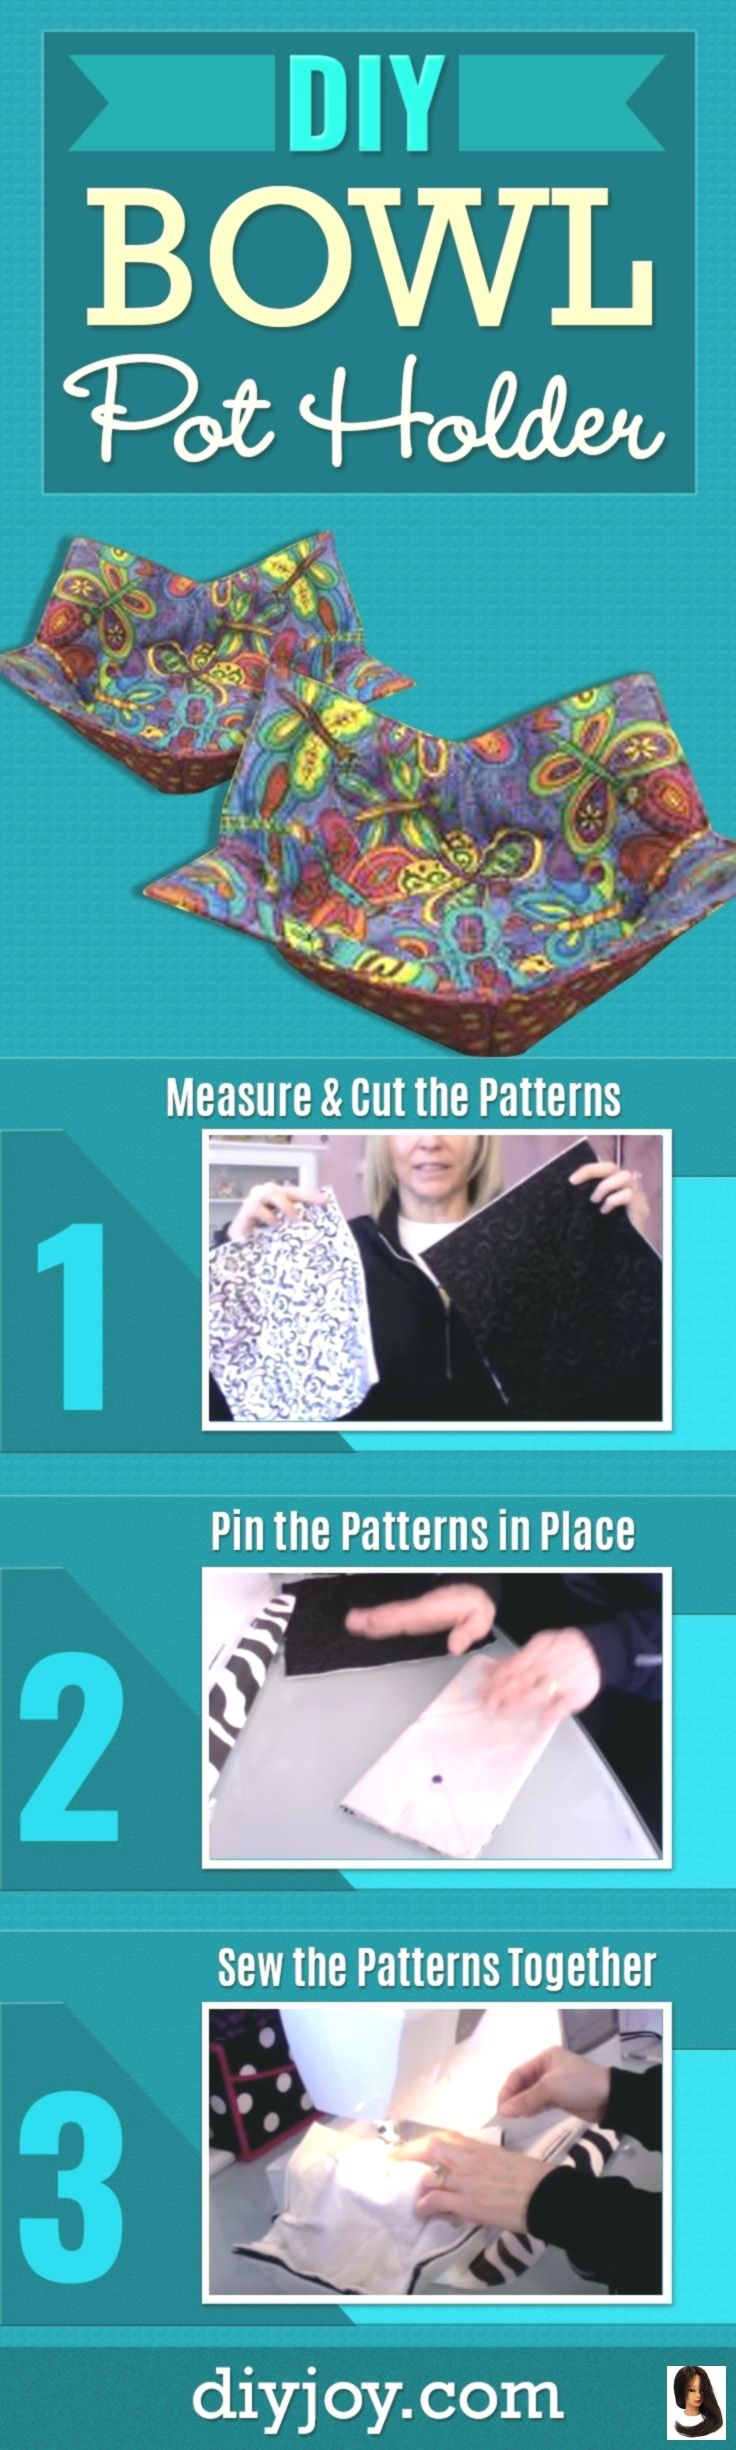 home decor tutorials Sewing Tutorial: Insulated Heat Protectors for Bowls        DIY Bowl Potholder - Easy Sewing Projects With Free Sewing Patterns - Youtube Video and Step by Step Tutorial for DIY Kitchen Home Decor